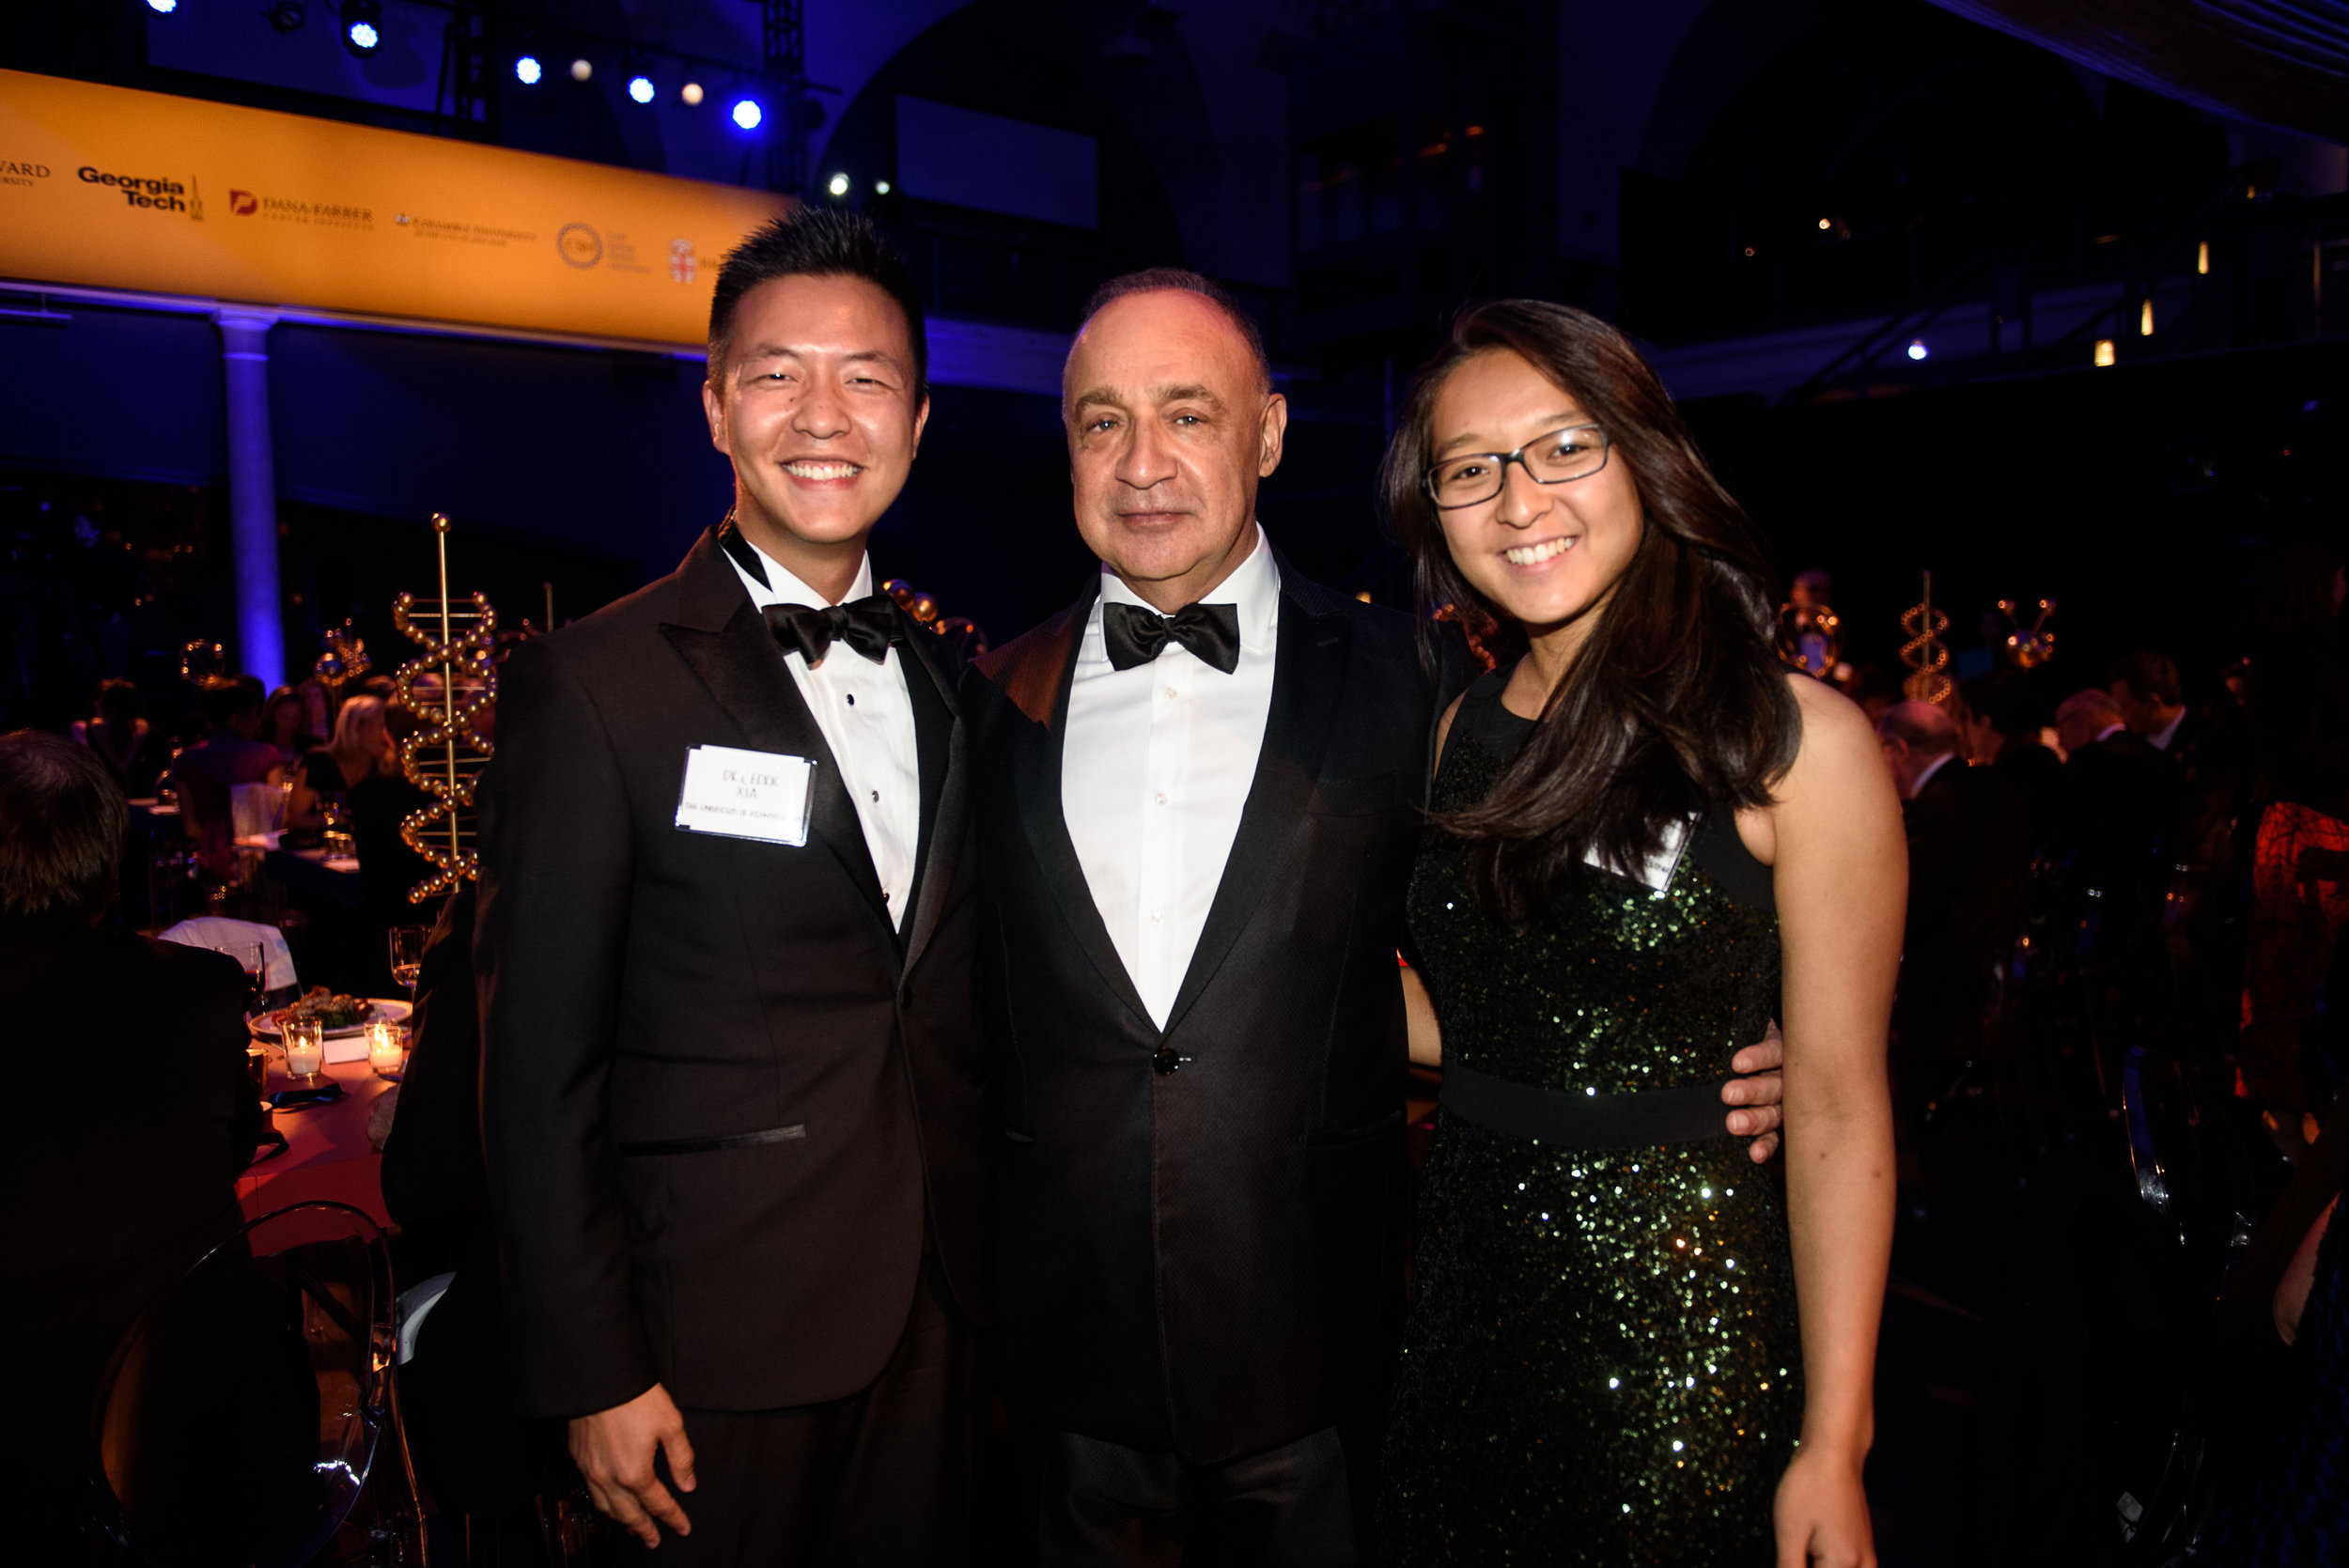 2018 Blavatnik Family Fellows Cedric Xia and Linda Zhou   with philanthropist Len Blavatnik    Photo by     Matt Gillis Photography    , provided courtesy of The New York Academy of Sciences